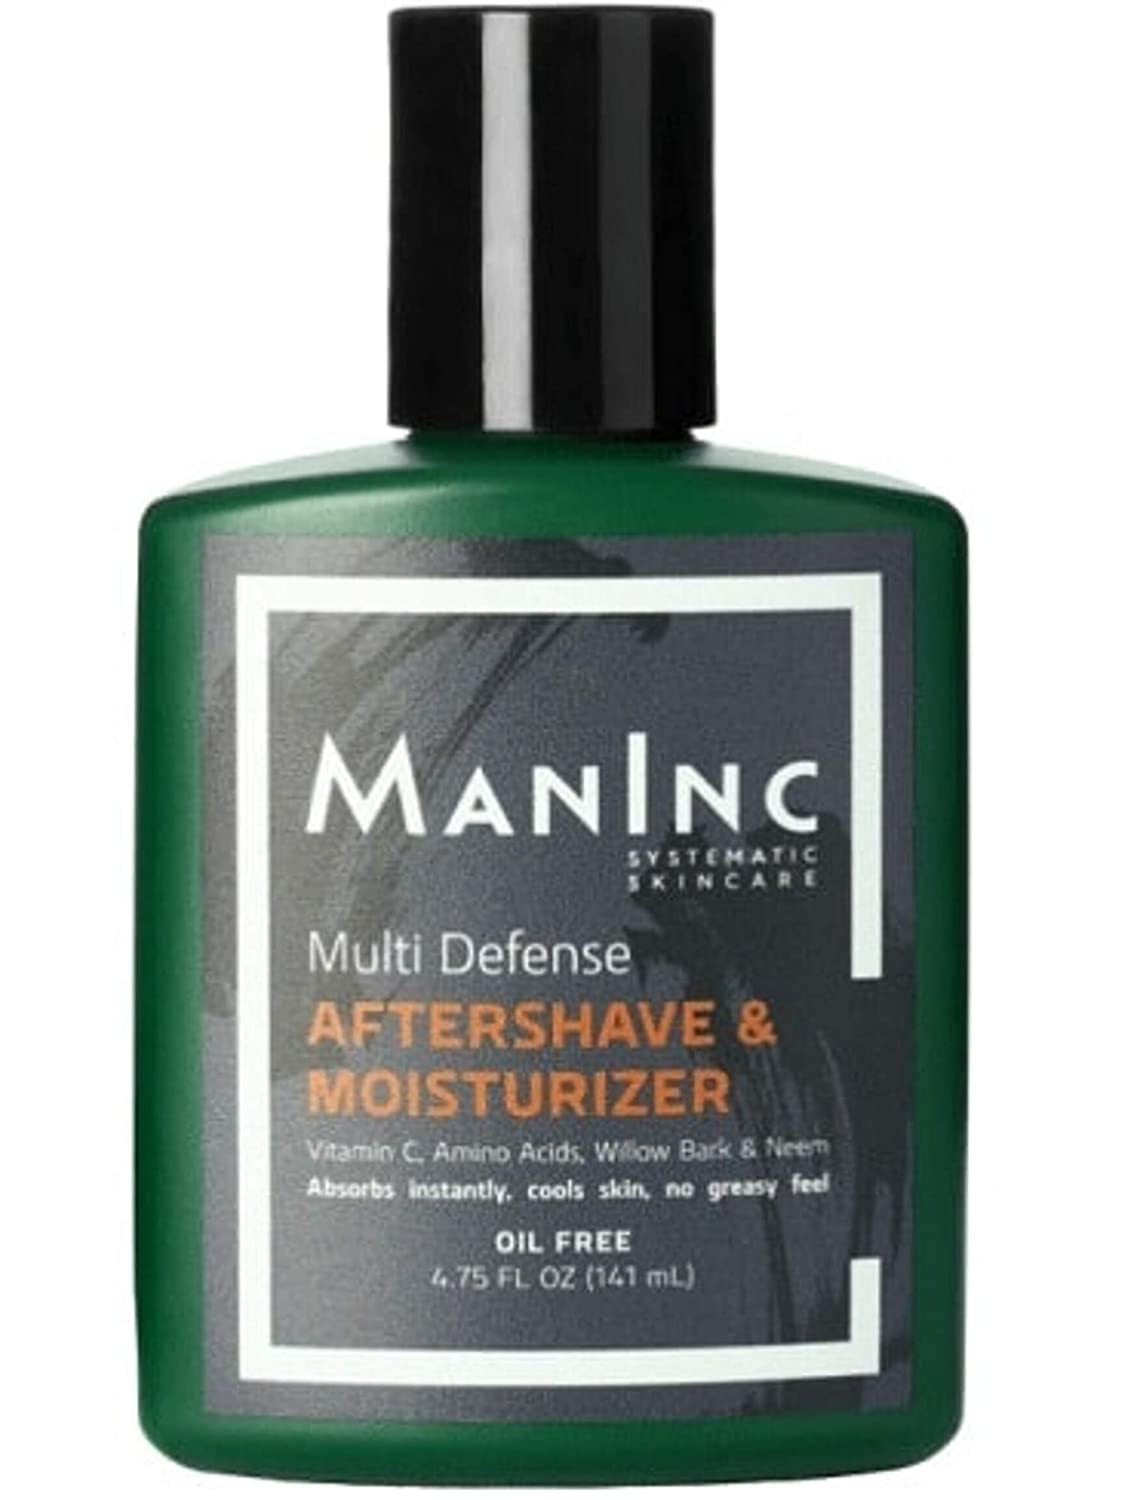 MANINC Anti Aging Aftershave Lotion for Men, Sensitive Skin, Cooling Sensation, for Razor Bumps Ingrown Hairs, Soothes After Shaving, Oil-Free, Skin Restoring, Vitamin C Lotion, Willow Bark, 4.75 oz